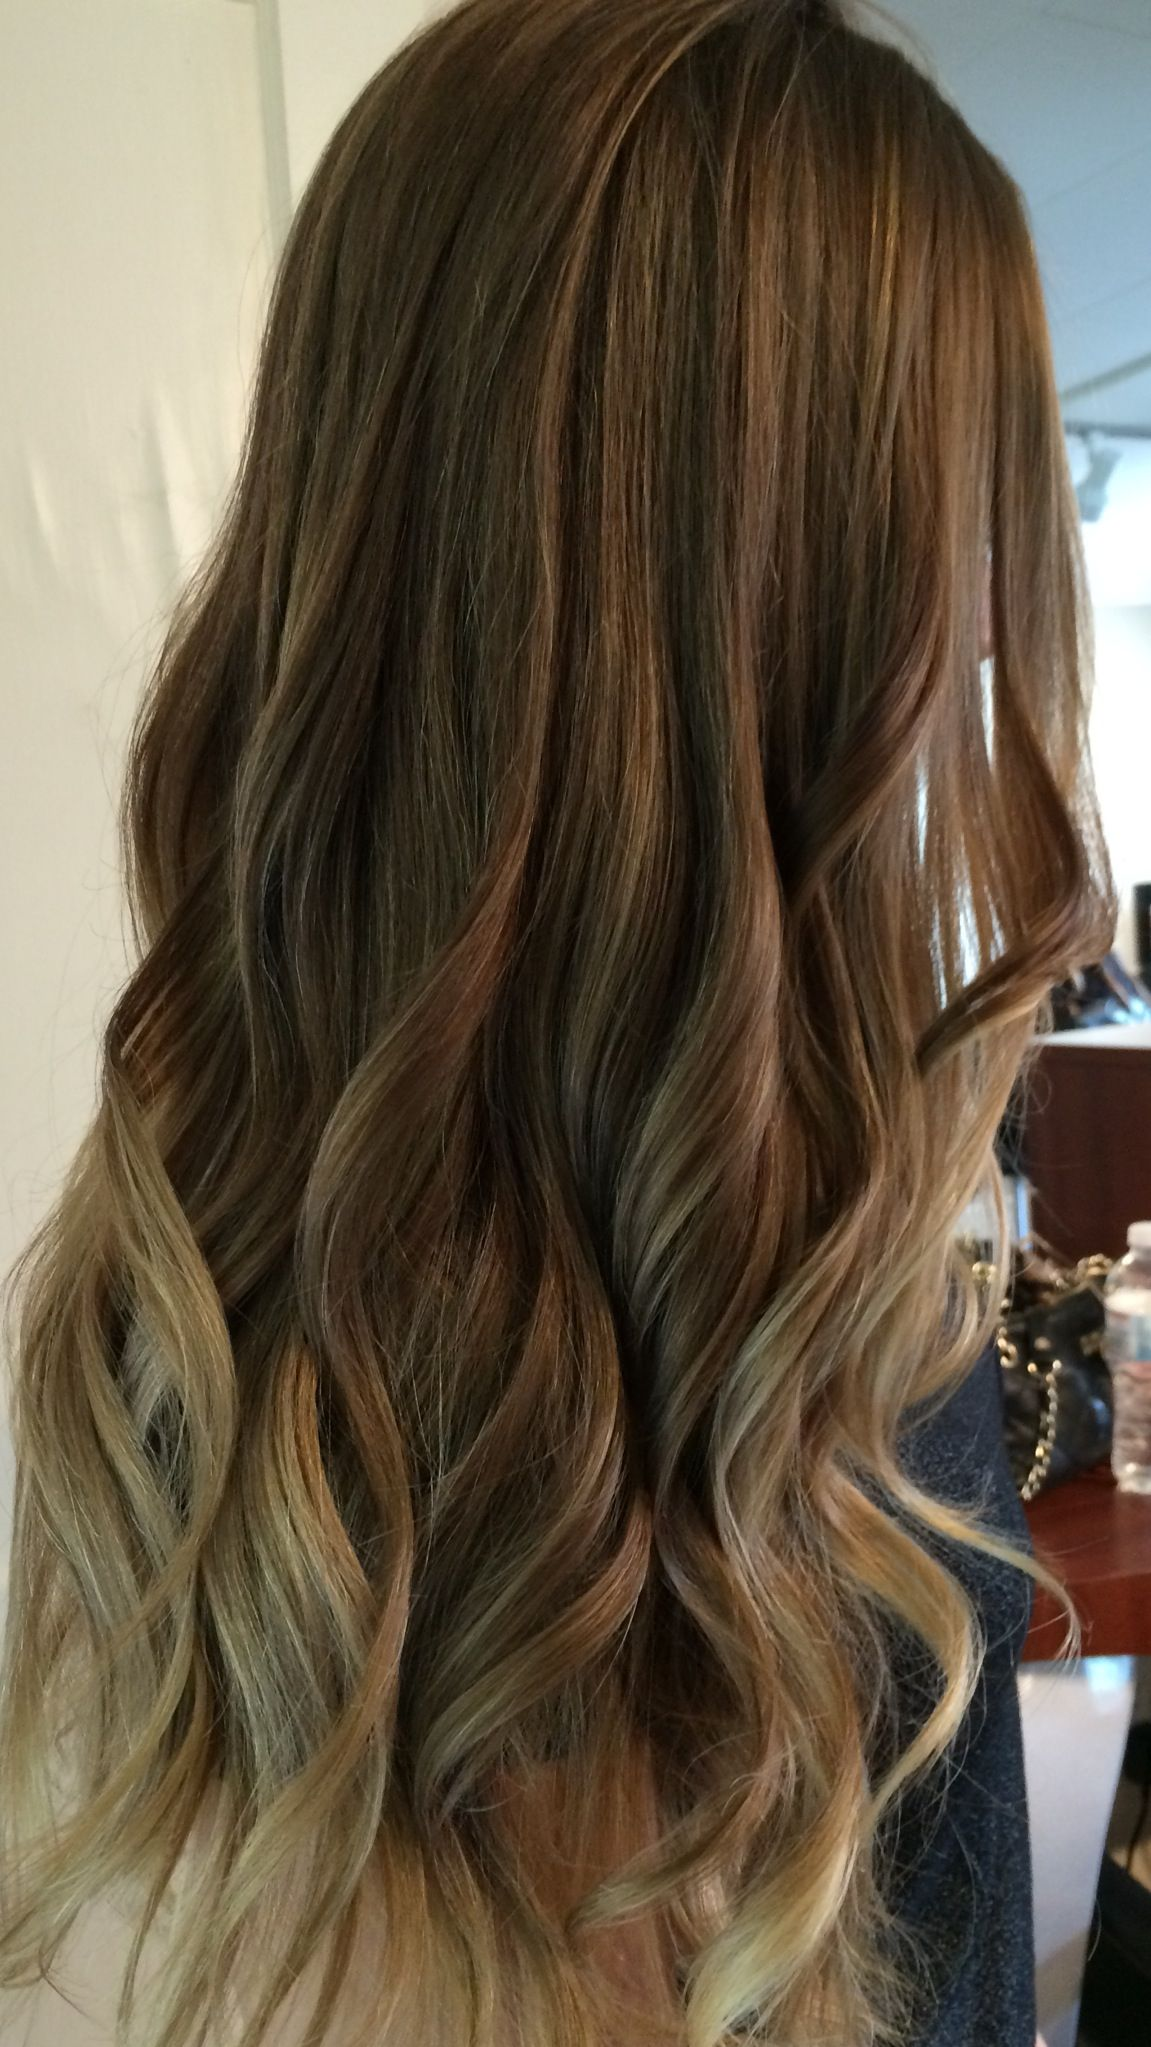 Balayage Ombre Using Her Natural Dark Blonde Light Brown Base And